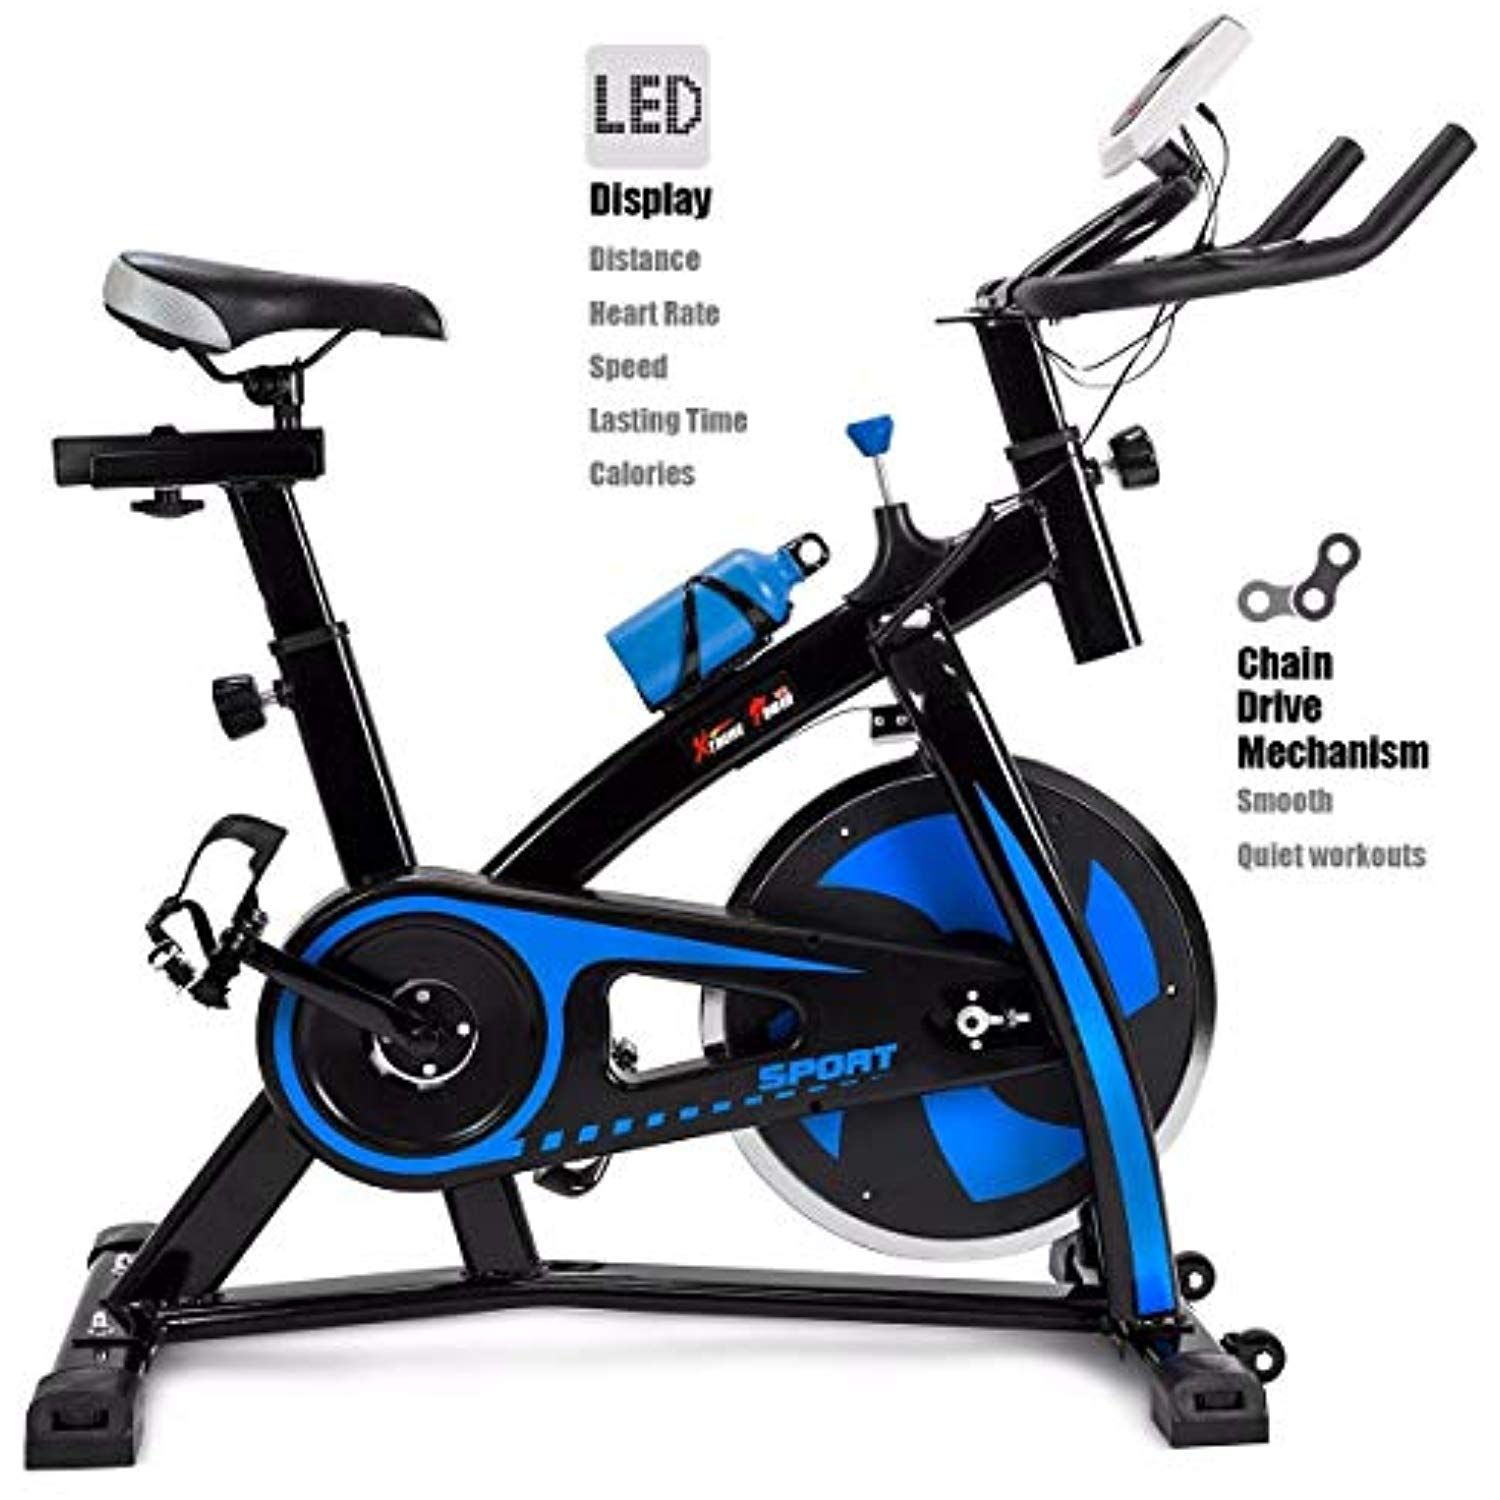 Orchid Prime Cycling Fitness Gym Bicycle Exercise Stationary Bike